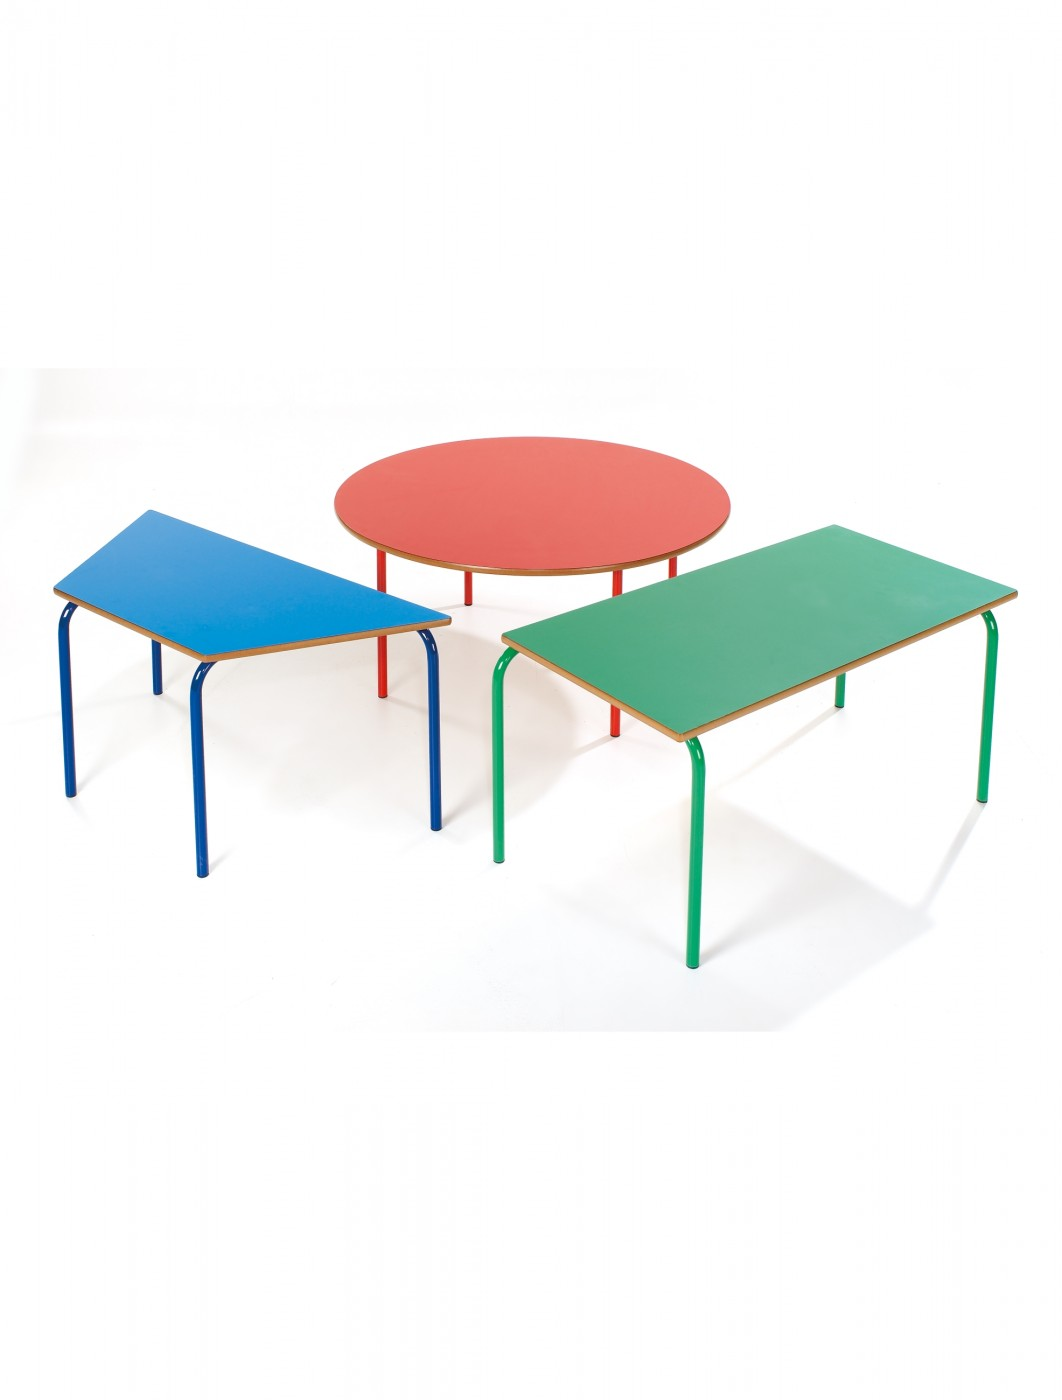 Charmant Nursery Tables Metalliform Standard Nursery Tables RTSS 115 MD   Enlarged  View